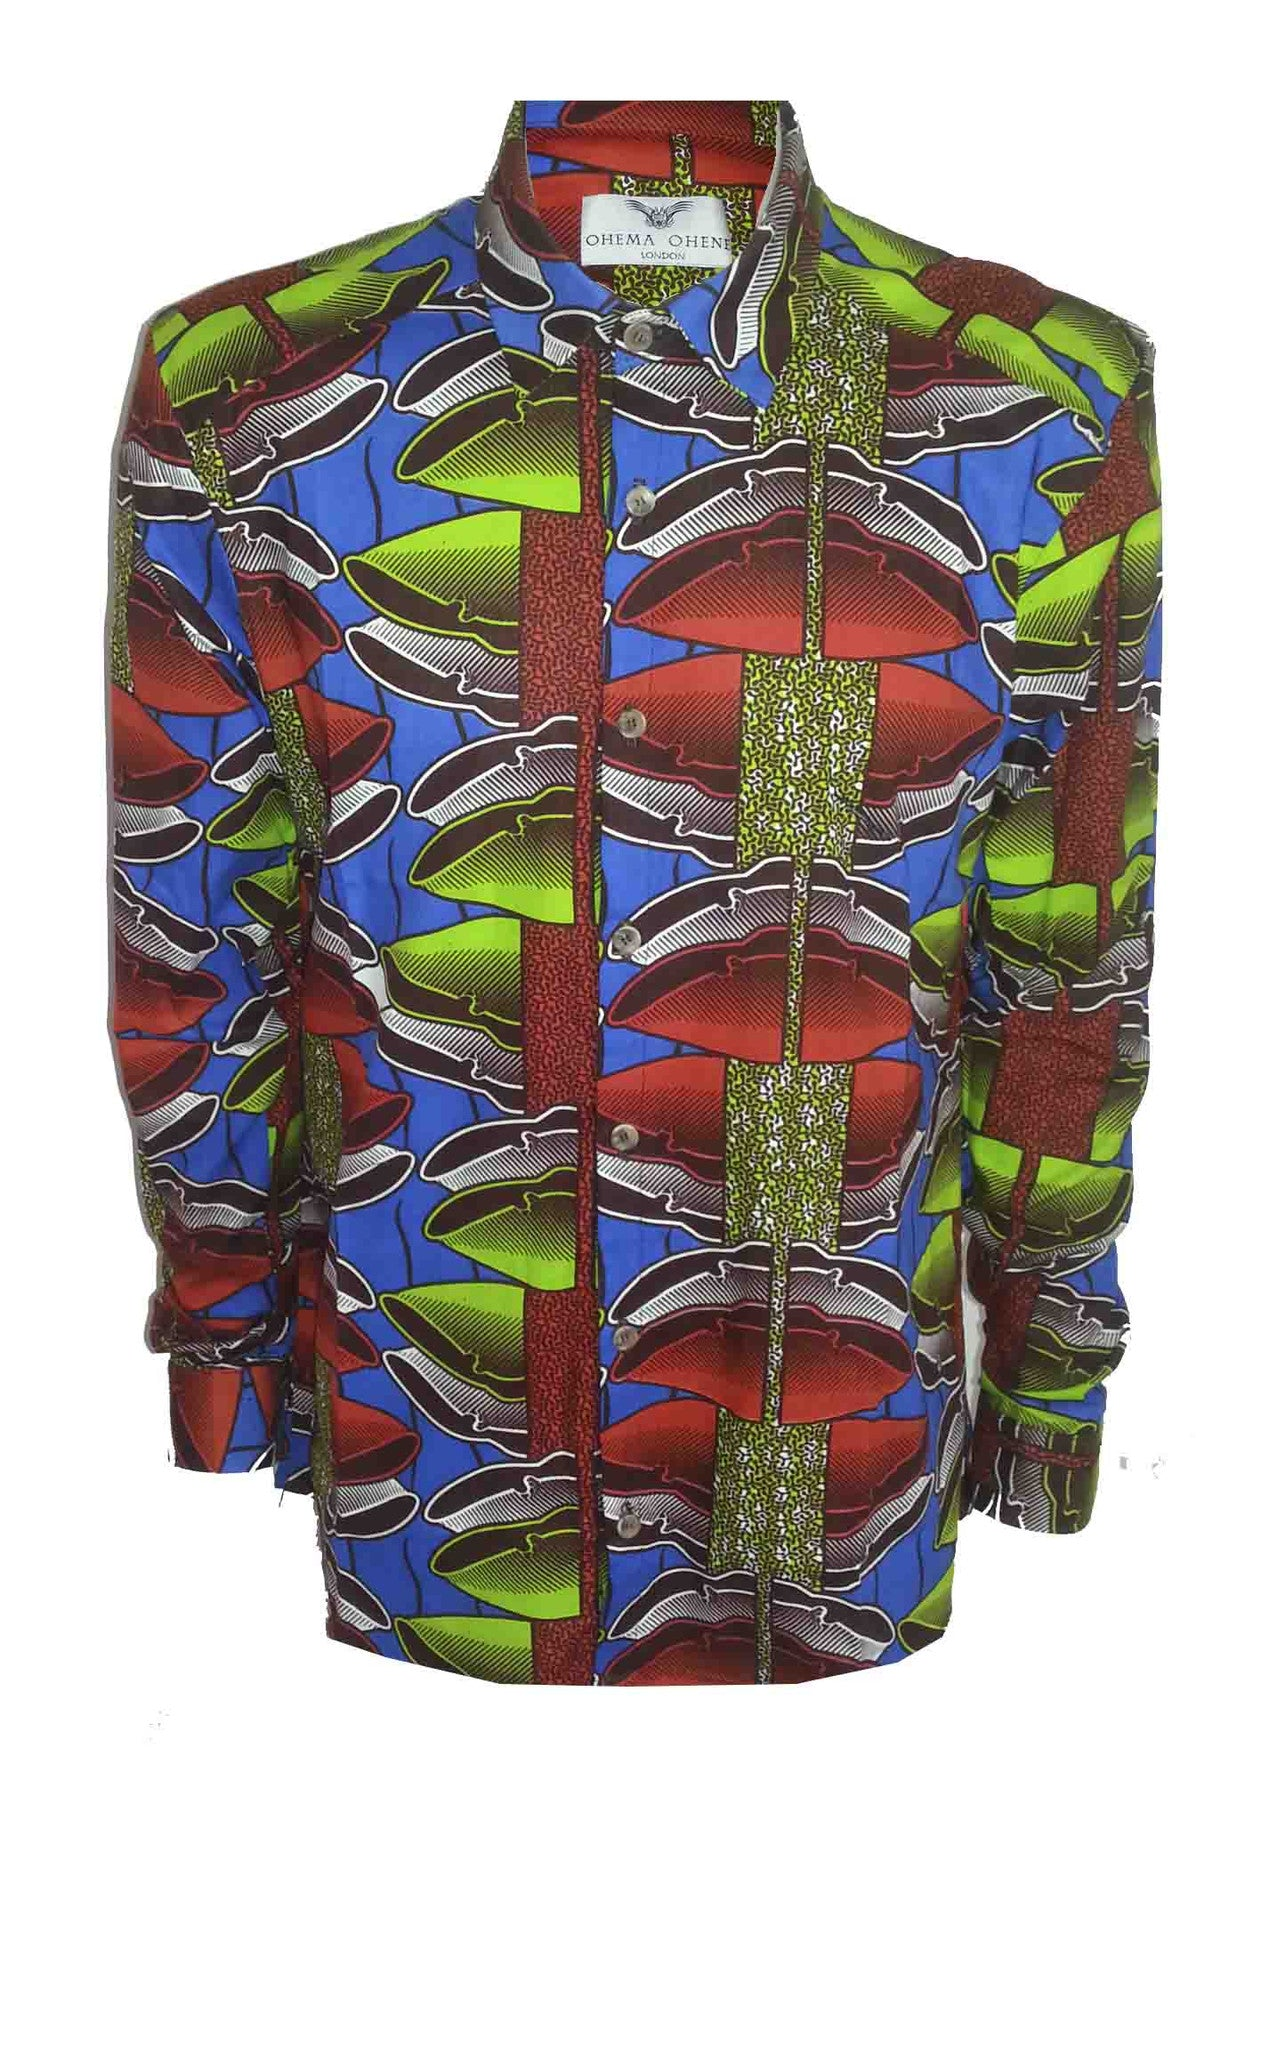 Men's Long sleeve African print shirt-Lime shells - OHEMA OHENE AFRICAN INSPIRED FASHION  - 1